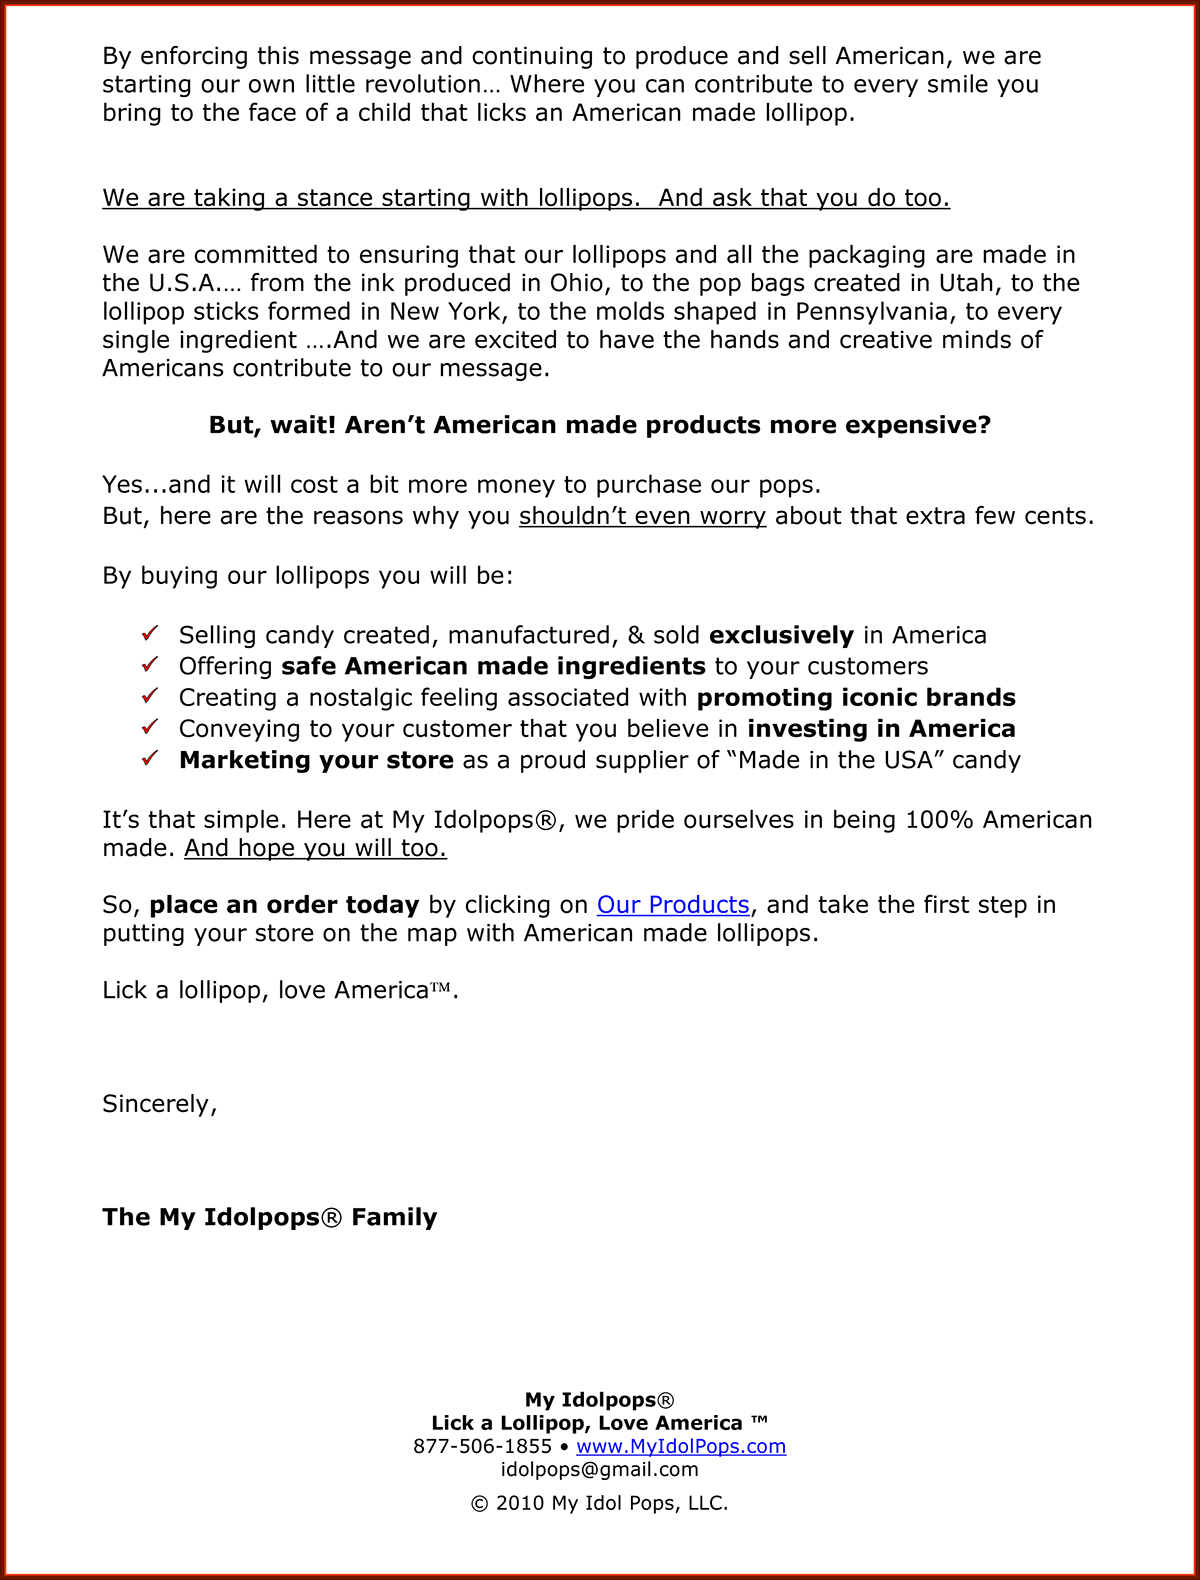 Barefoot Executive sales copy squeeze page resume writer Executive Resume Writer Career Consultant Free Resume Critique Professional Resume Writer Online Resume Writer resume service Writer Resume Sales Resume Writer NY Resume Writer LA Resume Writer DC Resume Writer Chicago Resume Writer Boston Resume Writer Philadelphia Resume Writer Seattle Resume Writer Austin Resume Writer Dallas Resume Writer Houston Resume Writer OC Resume Writer San Diego Resume Writer Raleigh Resume Writer PROFESSIONAL RESUME Executive Recruiter Resume bio bio writer comedic writer copywriter Editor freelance writer biography writer writer lisa lisa cafiero smarcastic business plans caption writer Tag Lines cafiero sales letter Sales Letters online copy web content online content web copy creative consultant humorous taglines humorous slogans launch page teleclass on-camera   copywriters in Los Angeles professional copywriters in Los Angeles copywriting services CA sales writers in Los Angeles advertising writing Los Angeles Sales Lettes Los Angeles Sales Copy in Los Angeles copywriting services Studio City copywriting services Los Angeles professional copywriting services Los Angeles writers in Burbank business writers Los Angeles business writers Studio City creative content business owners witty biographies squeeze pages slogans Resumes captions writethefirsttime.net Charmaine Hammond on toby's terms Carrie Wilkerson